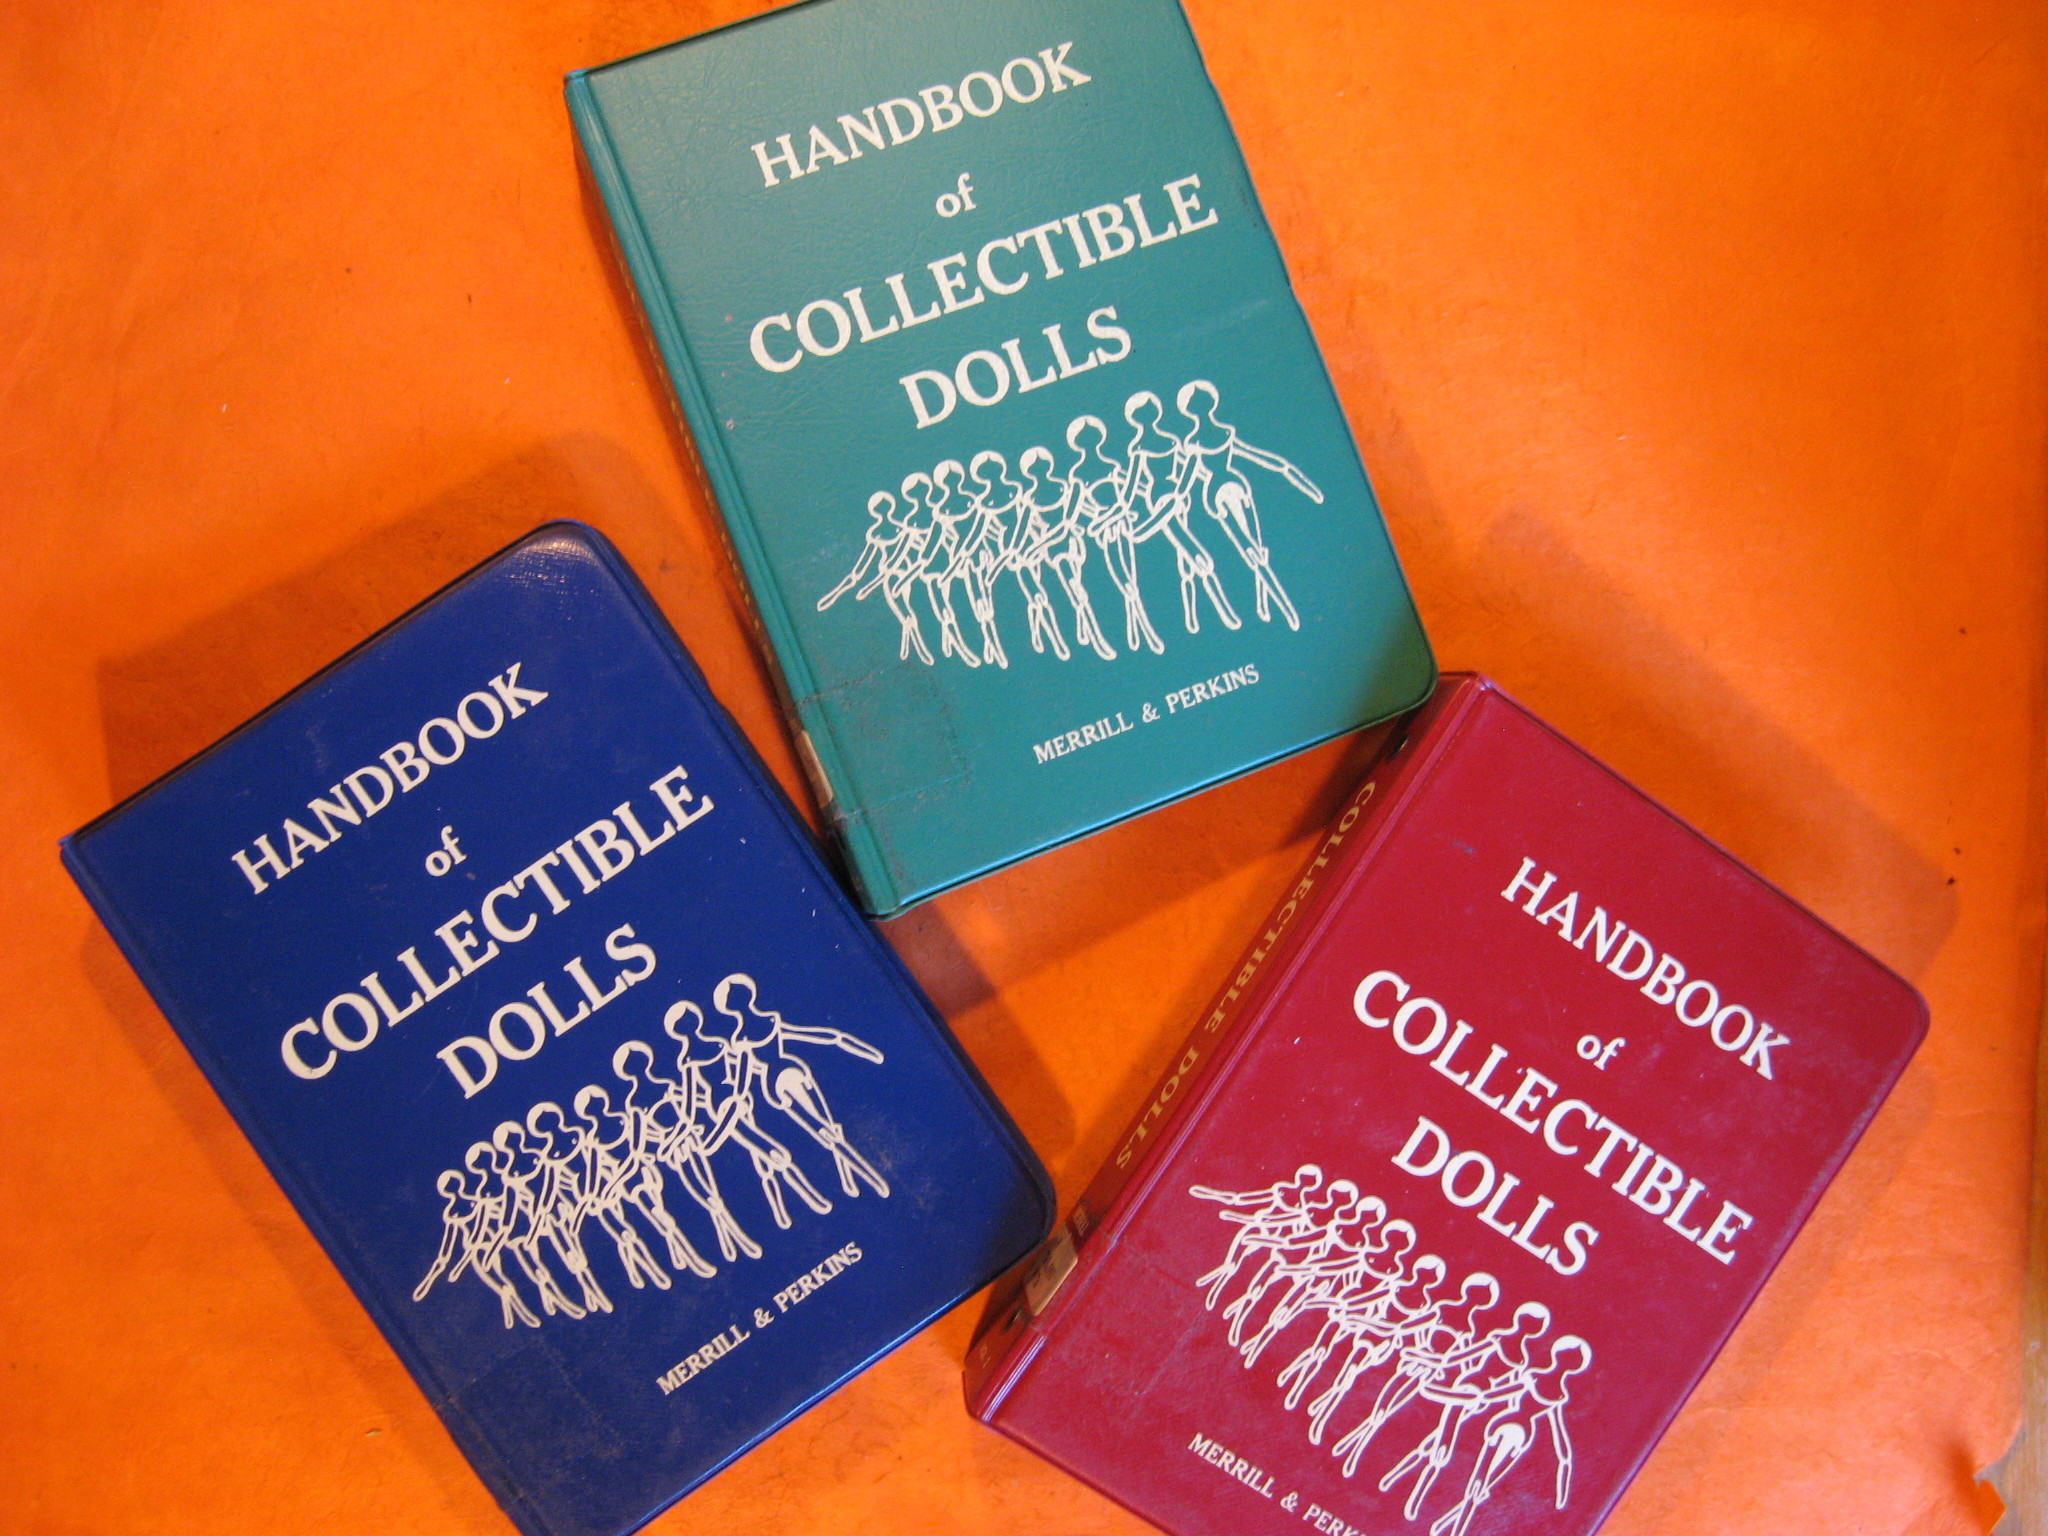 Handbook of Collectible Dolls - 3 Volumes, Merrill, Madeline & Perkins, Nellie W.